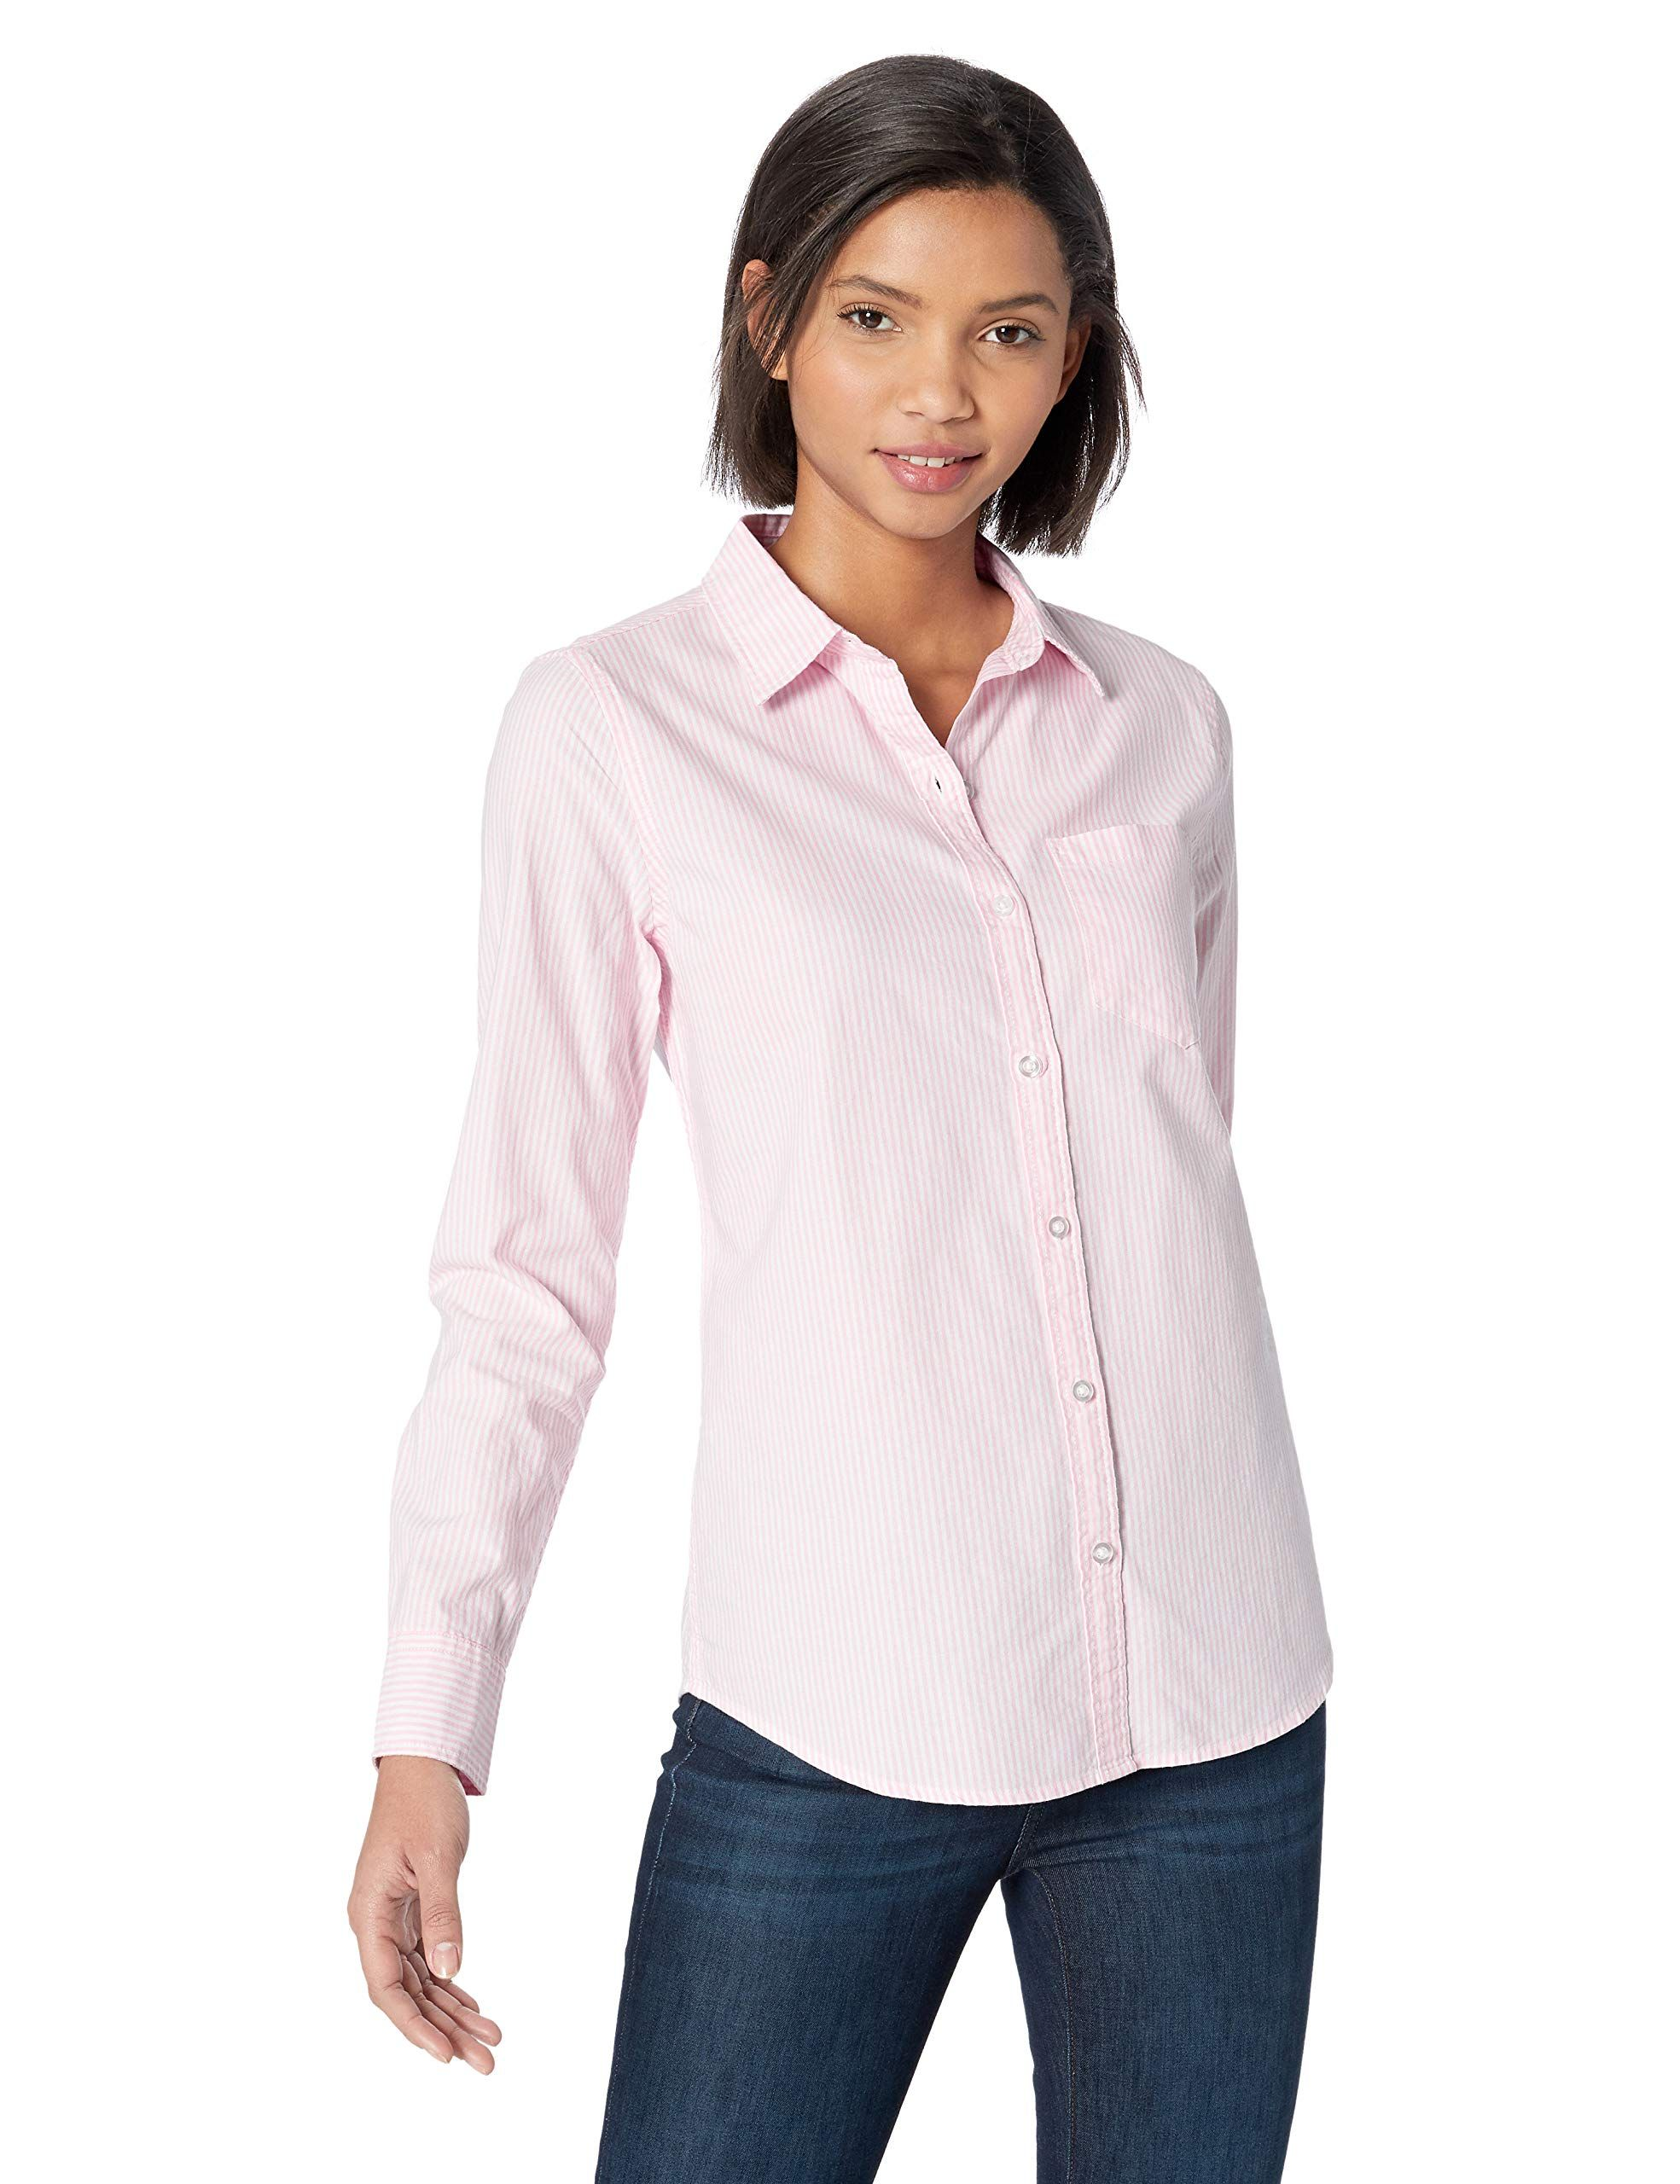 b28d049ad4 Amazon Essentials Women s Long-Sleeve Classic-Fit Patterned Oxford Shirt